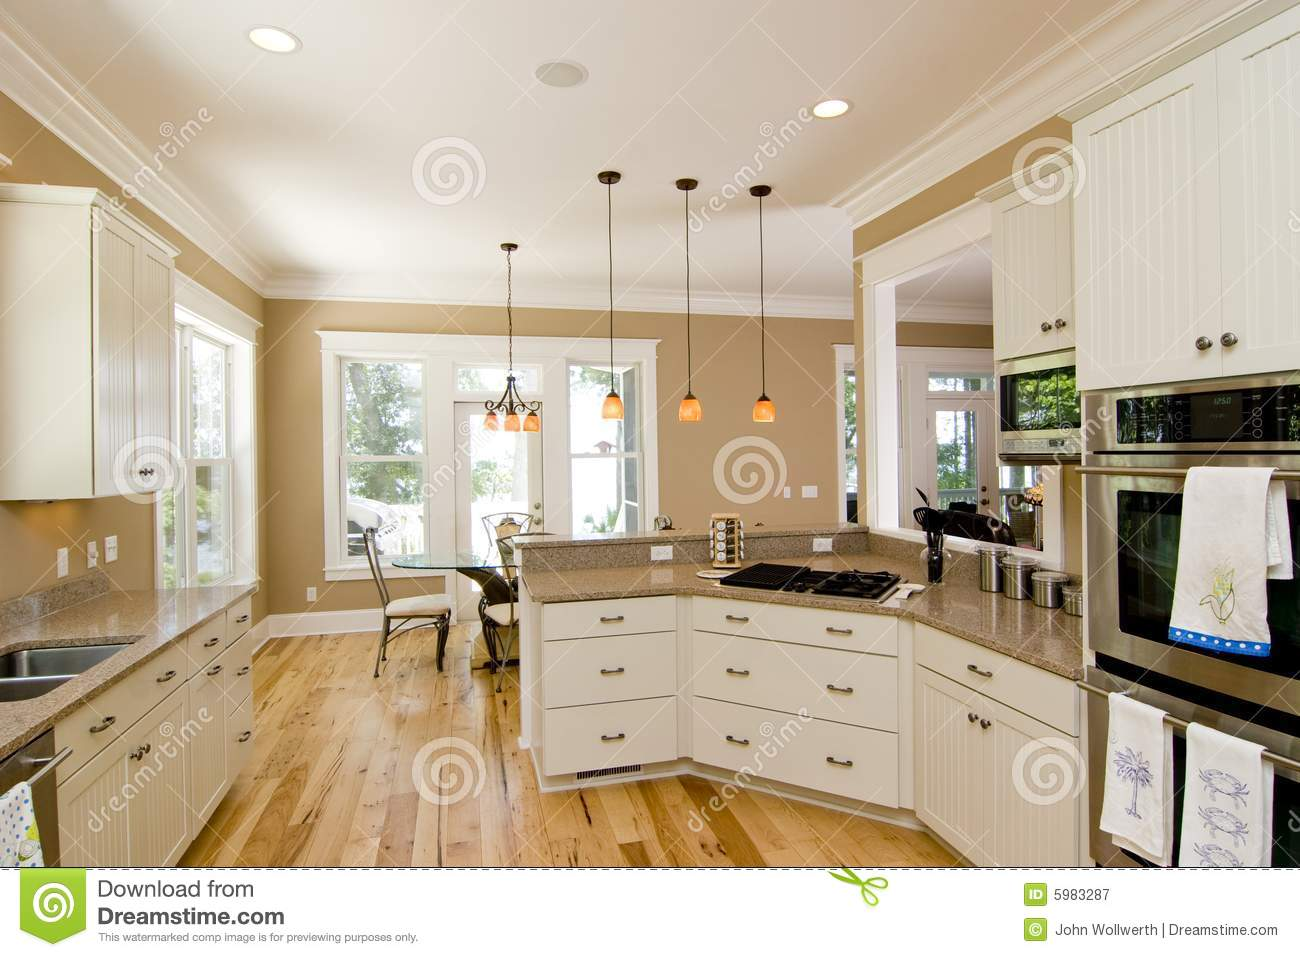 Beautiful kitchen royalty free stock photography image - Images of kitchens ...